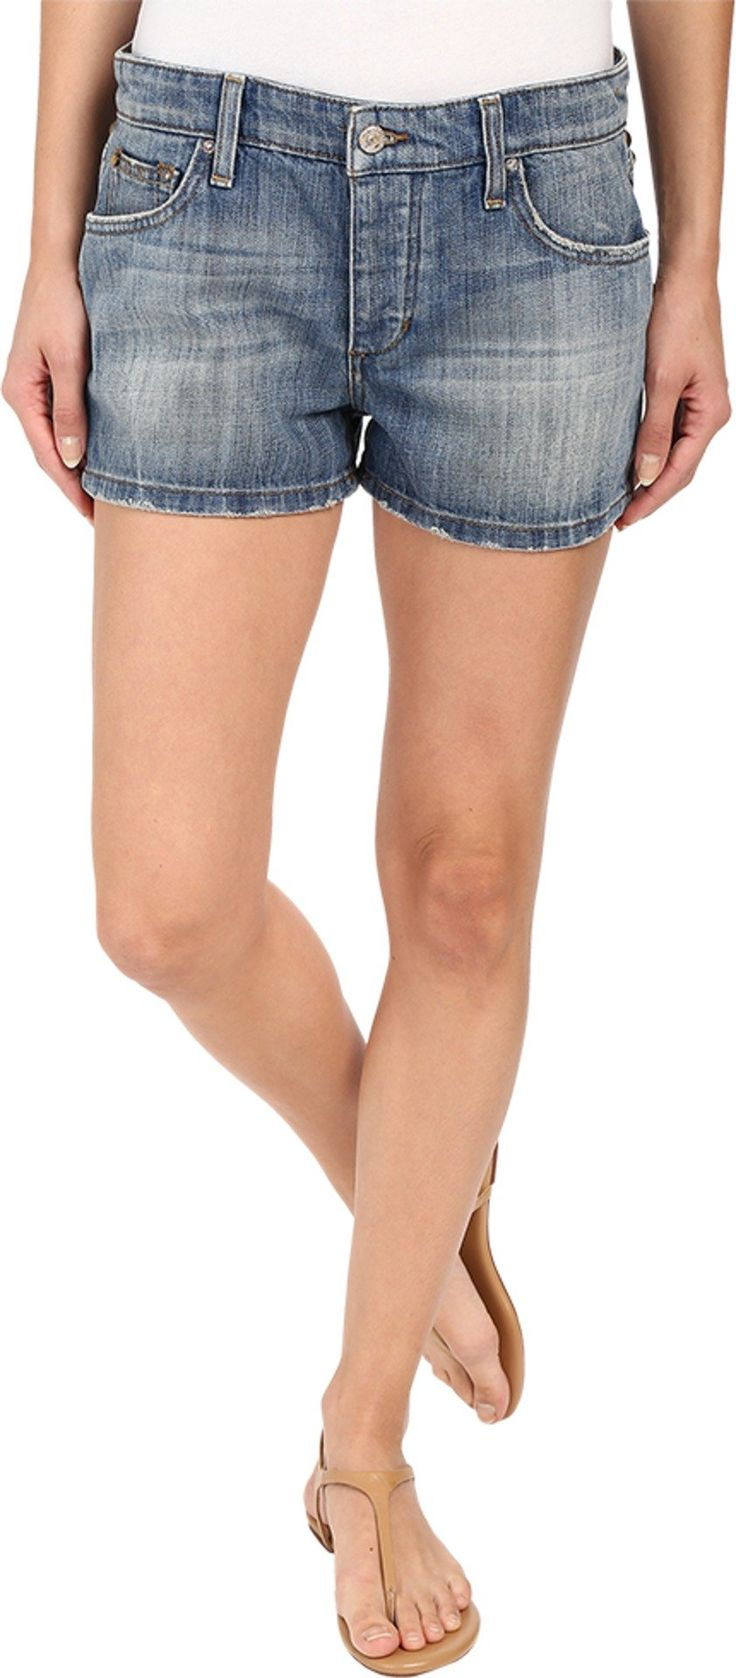 Joe's Jeans Women's Billie Shorts w/ Phone Pocket Janelle Shorts 29 X 2. The Billie Short features a boyfriend fit with a slouchy top block and mid-thigh length. Janelle is a medium wash that has been treated with whiskers and sandblasting for a dirty brown cast. 11.75 oz rigid denim. Brass-tone hardware. Contrast topstitching. Aged rivet hardware accents the back yoke. Contrast patch-replacement detail at the back waist. Leather logo patch set at back pocket. Five-pocket design with...